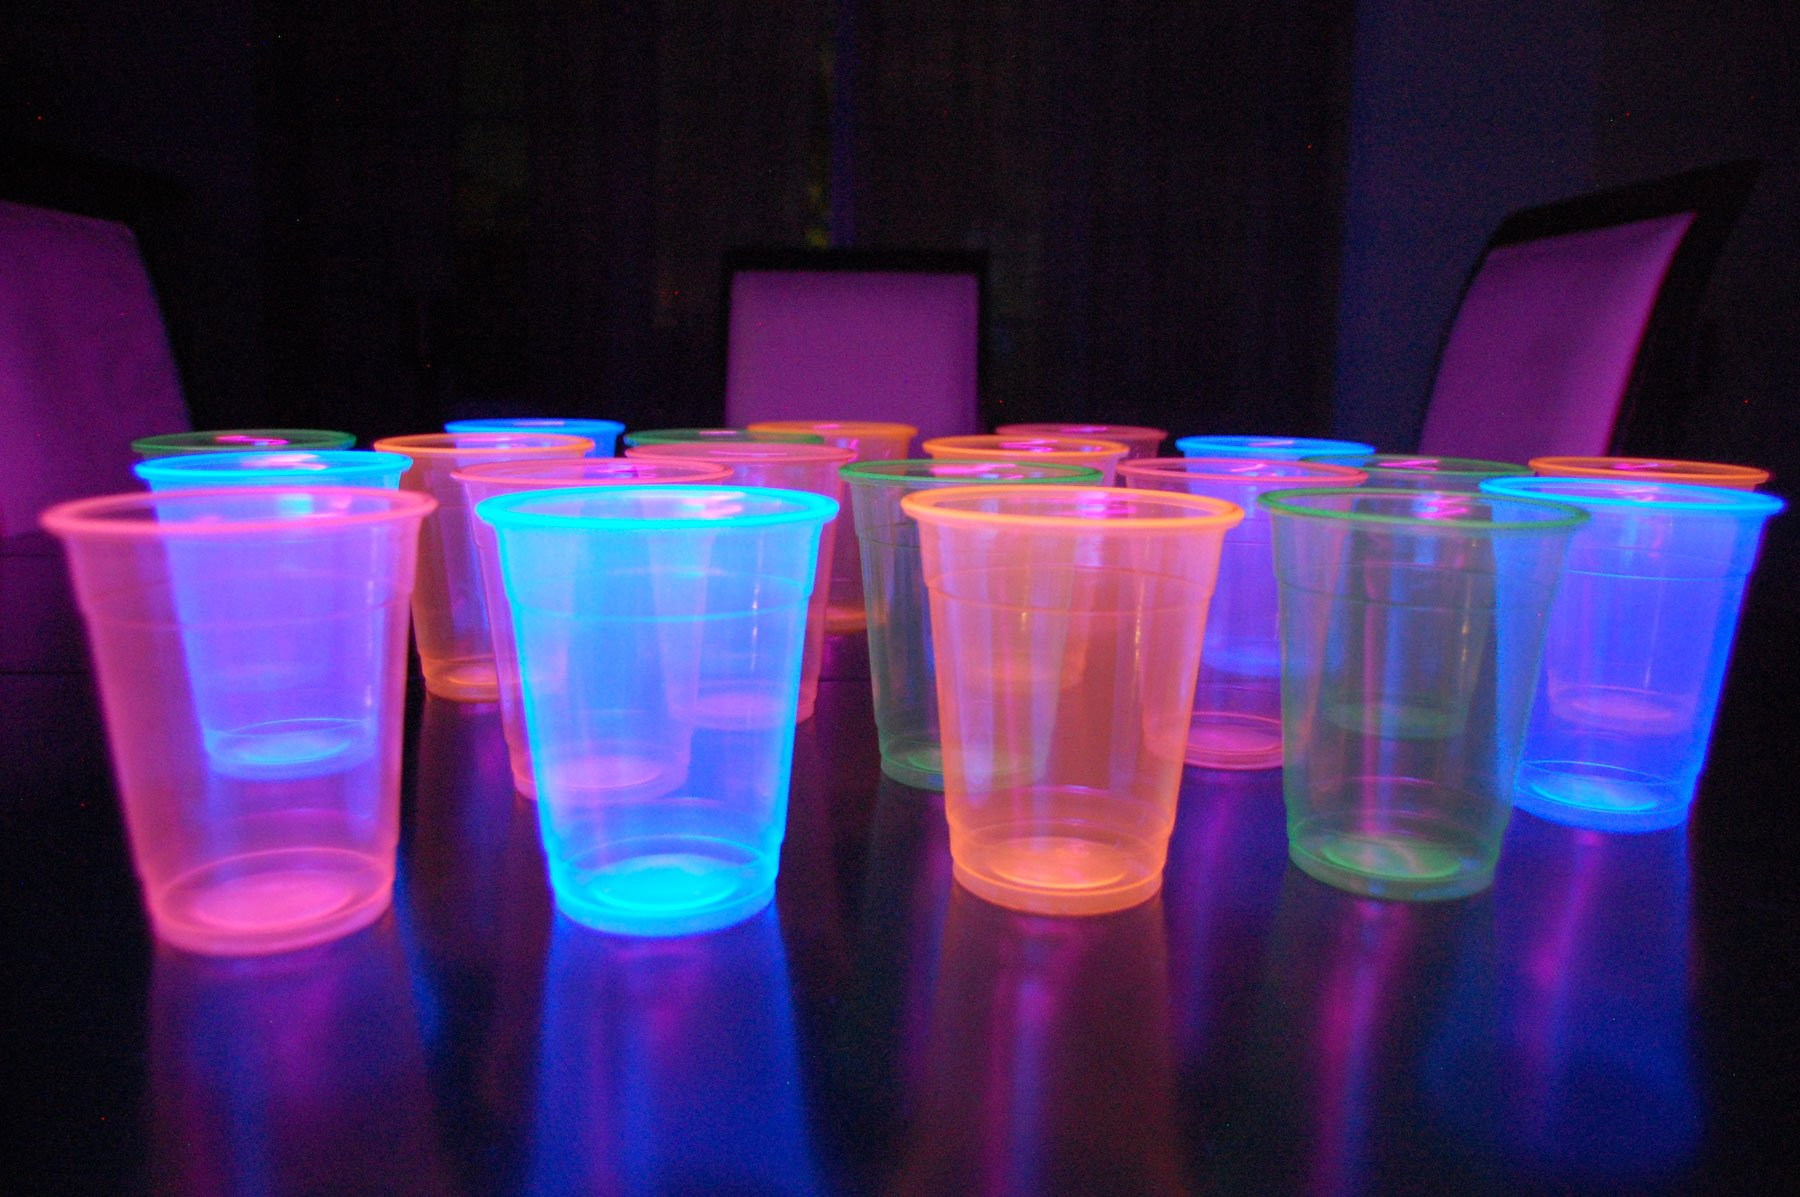 12oz Neon Assorted Blacklight Reactive Soft Plastic Cups with Free Blacklight Balloons (20) by DirectGlow LLC